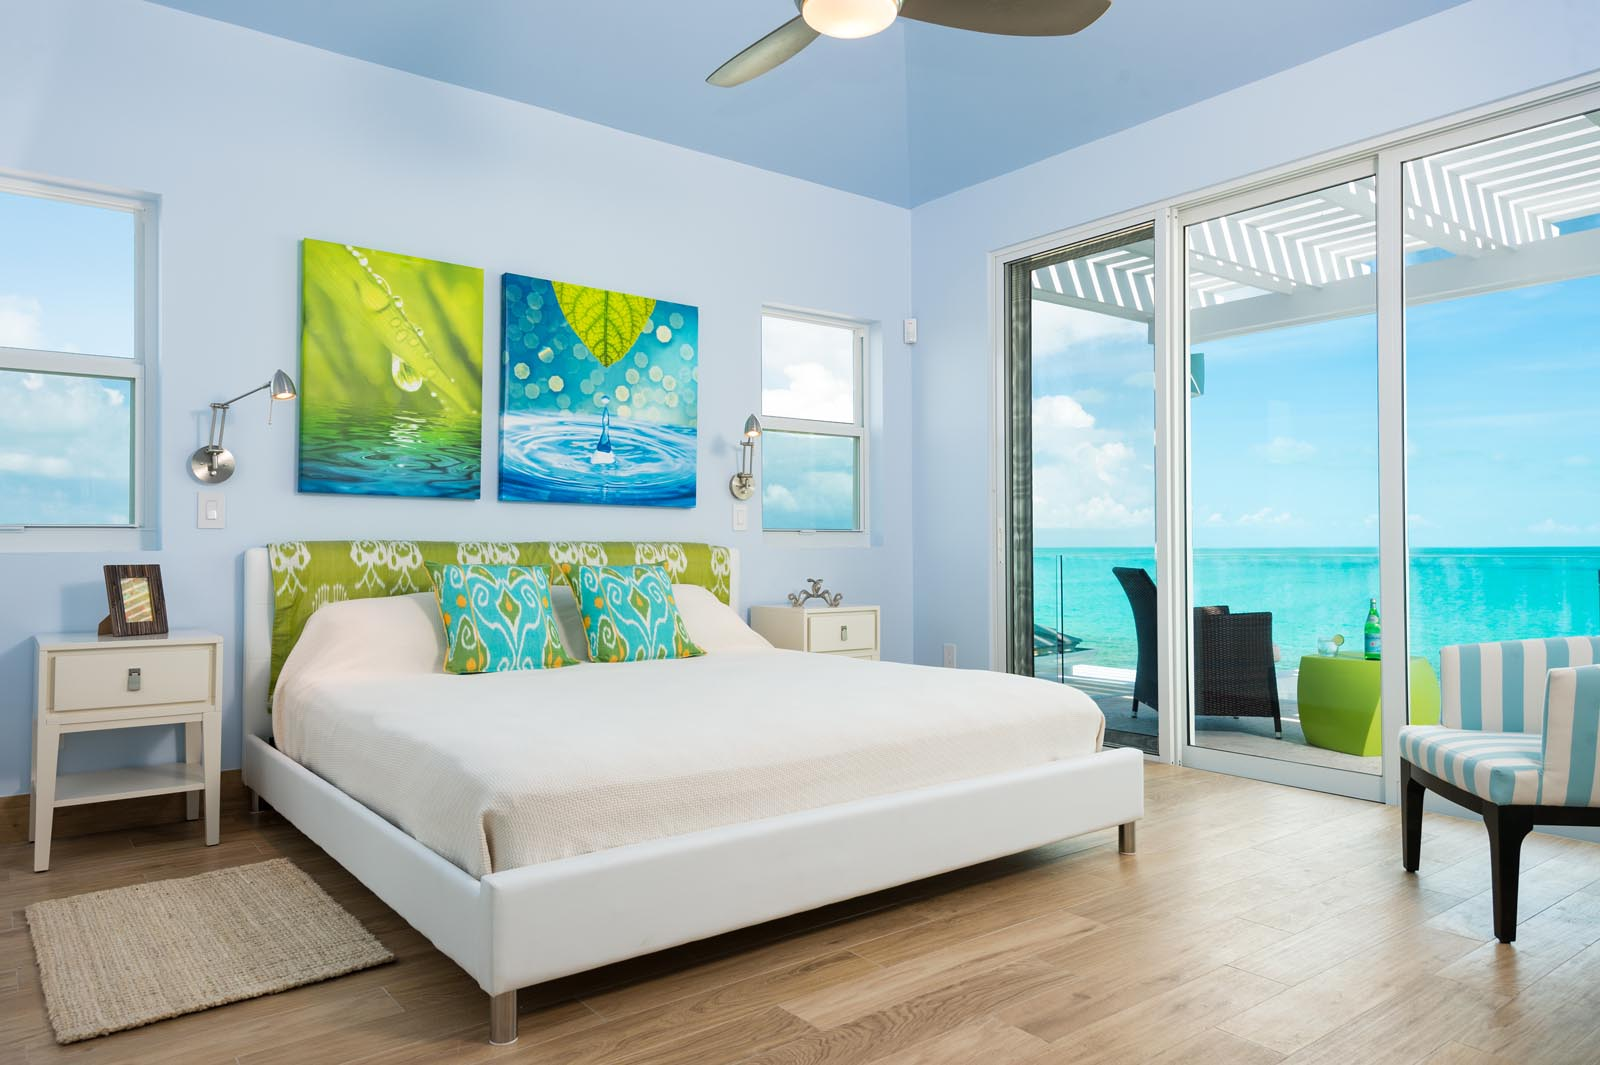 Villa Isla is light, spacious and contemporary throughout